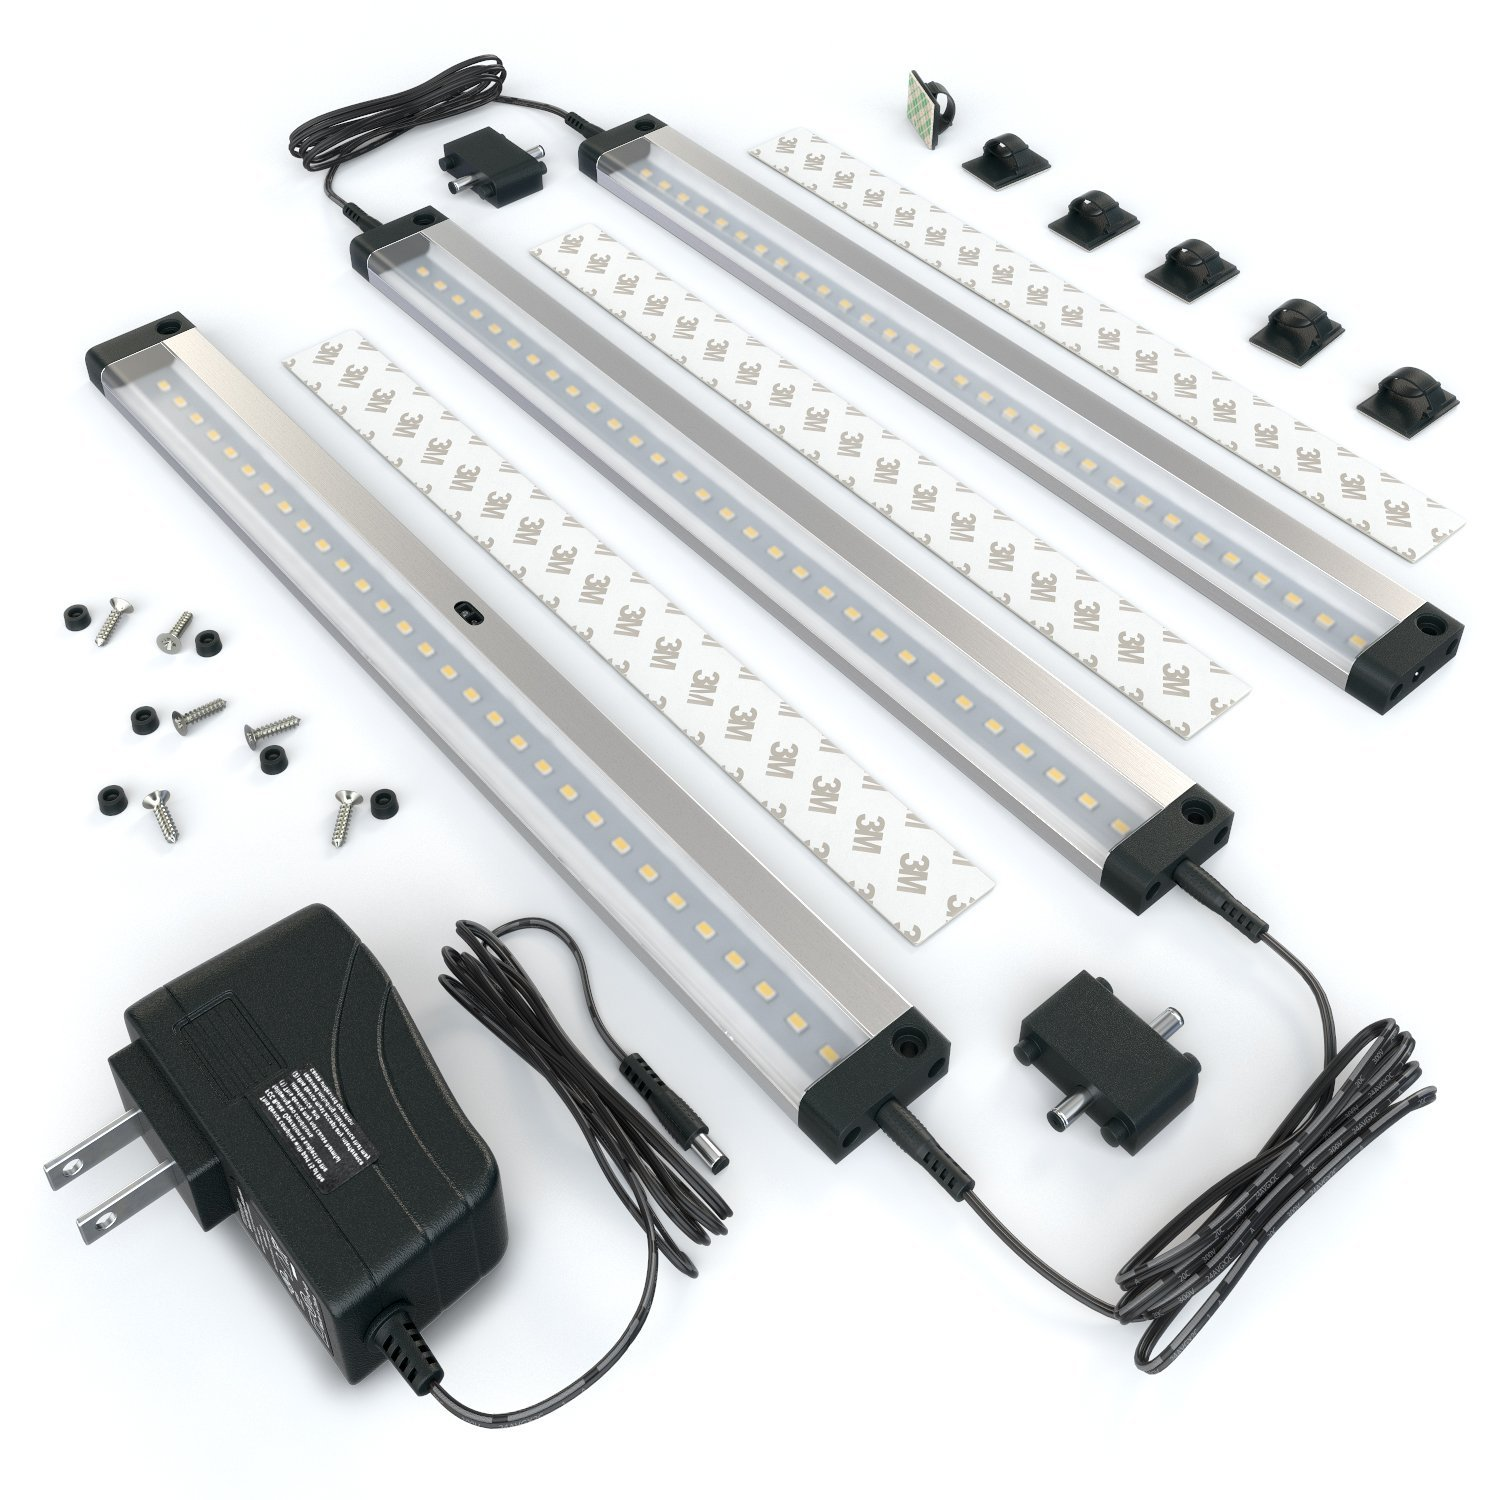 the Eshine 3 Panels LED Under Cabinet Lighting Kit pictured here